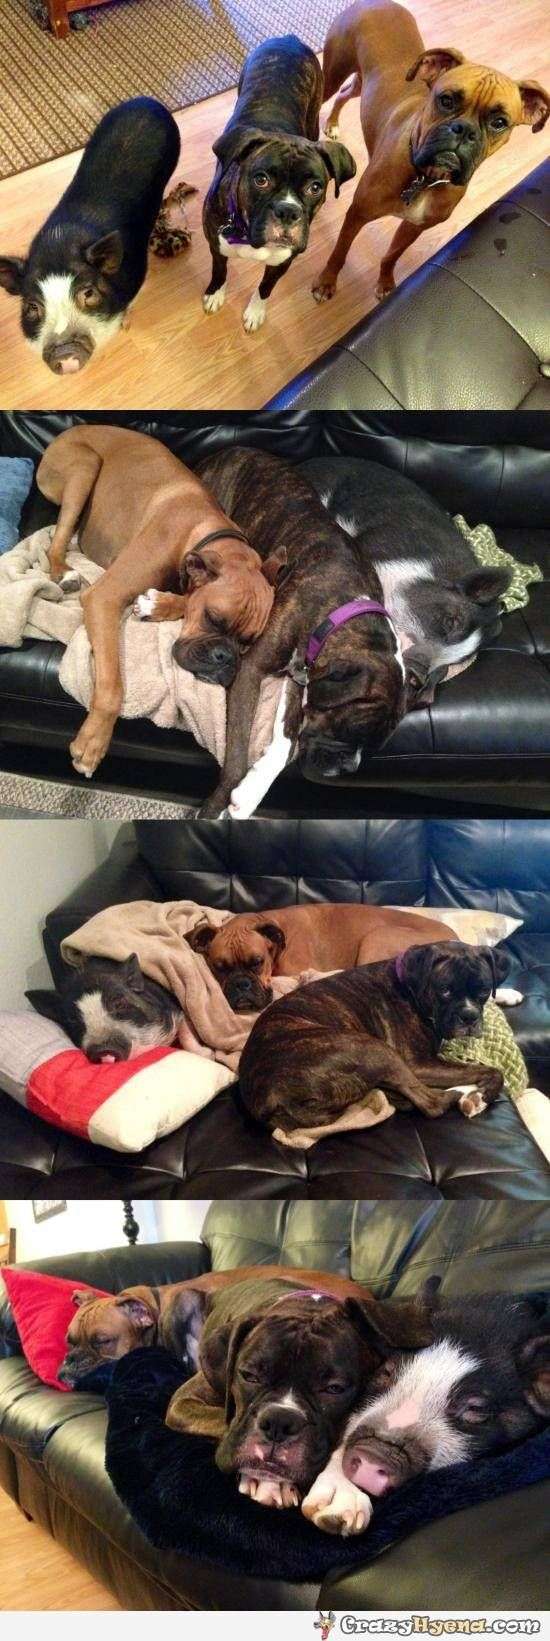 Humorous photos of two dogs and a pig living together like they are three dogs. This pig has some identity crisis.